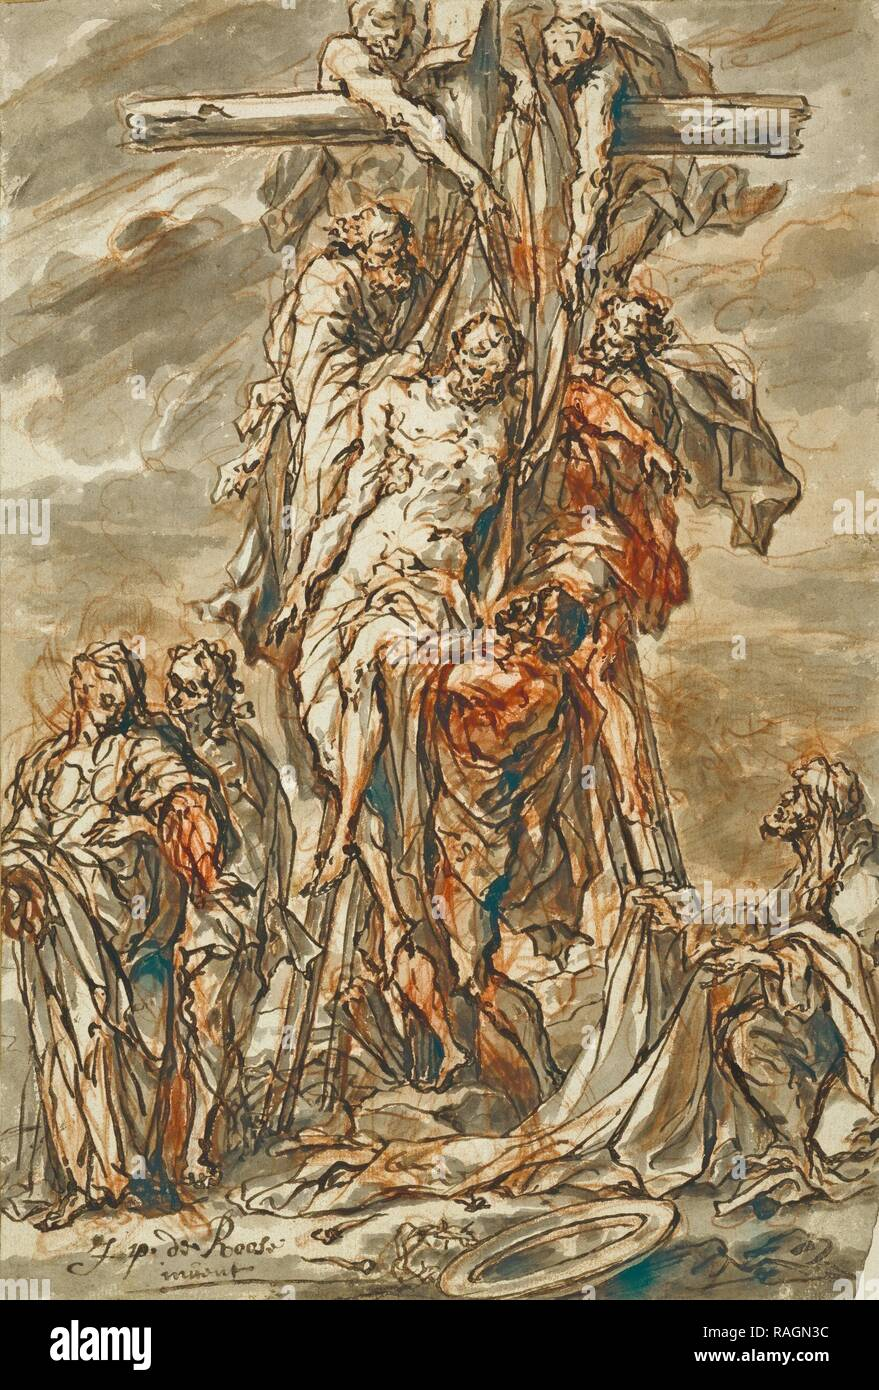 Descent from the Cross, Phillip Roos (German, 1655,1657 - 1706), about 1696, Pen and brown ink with gray wash over reimagined Stock Photo